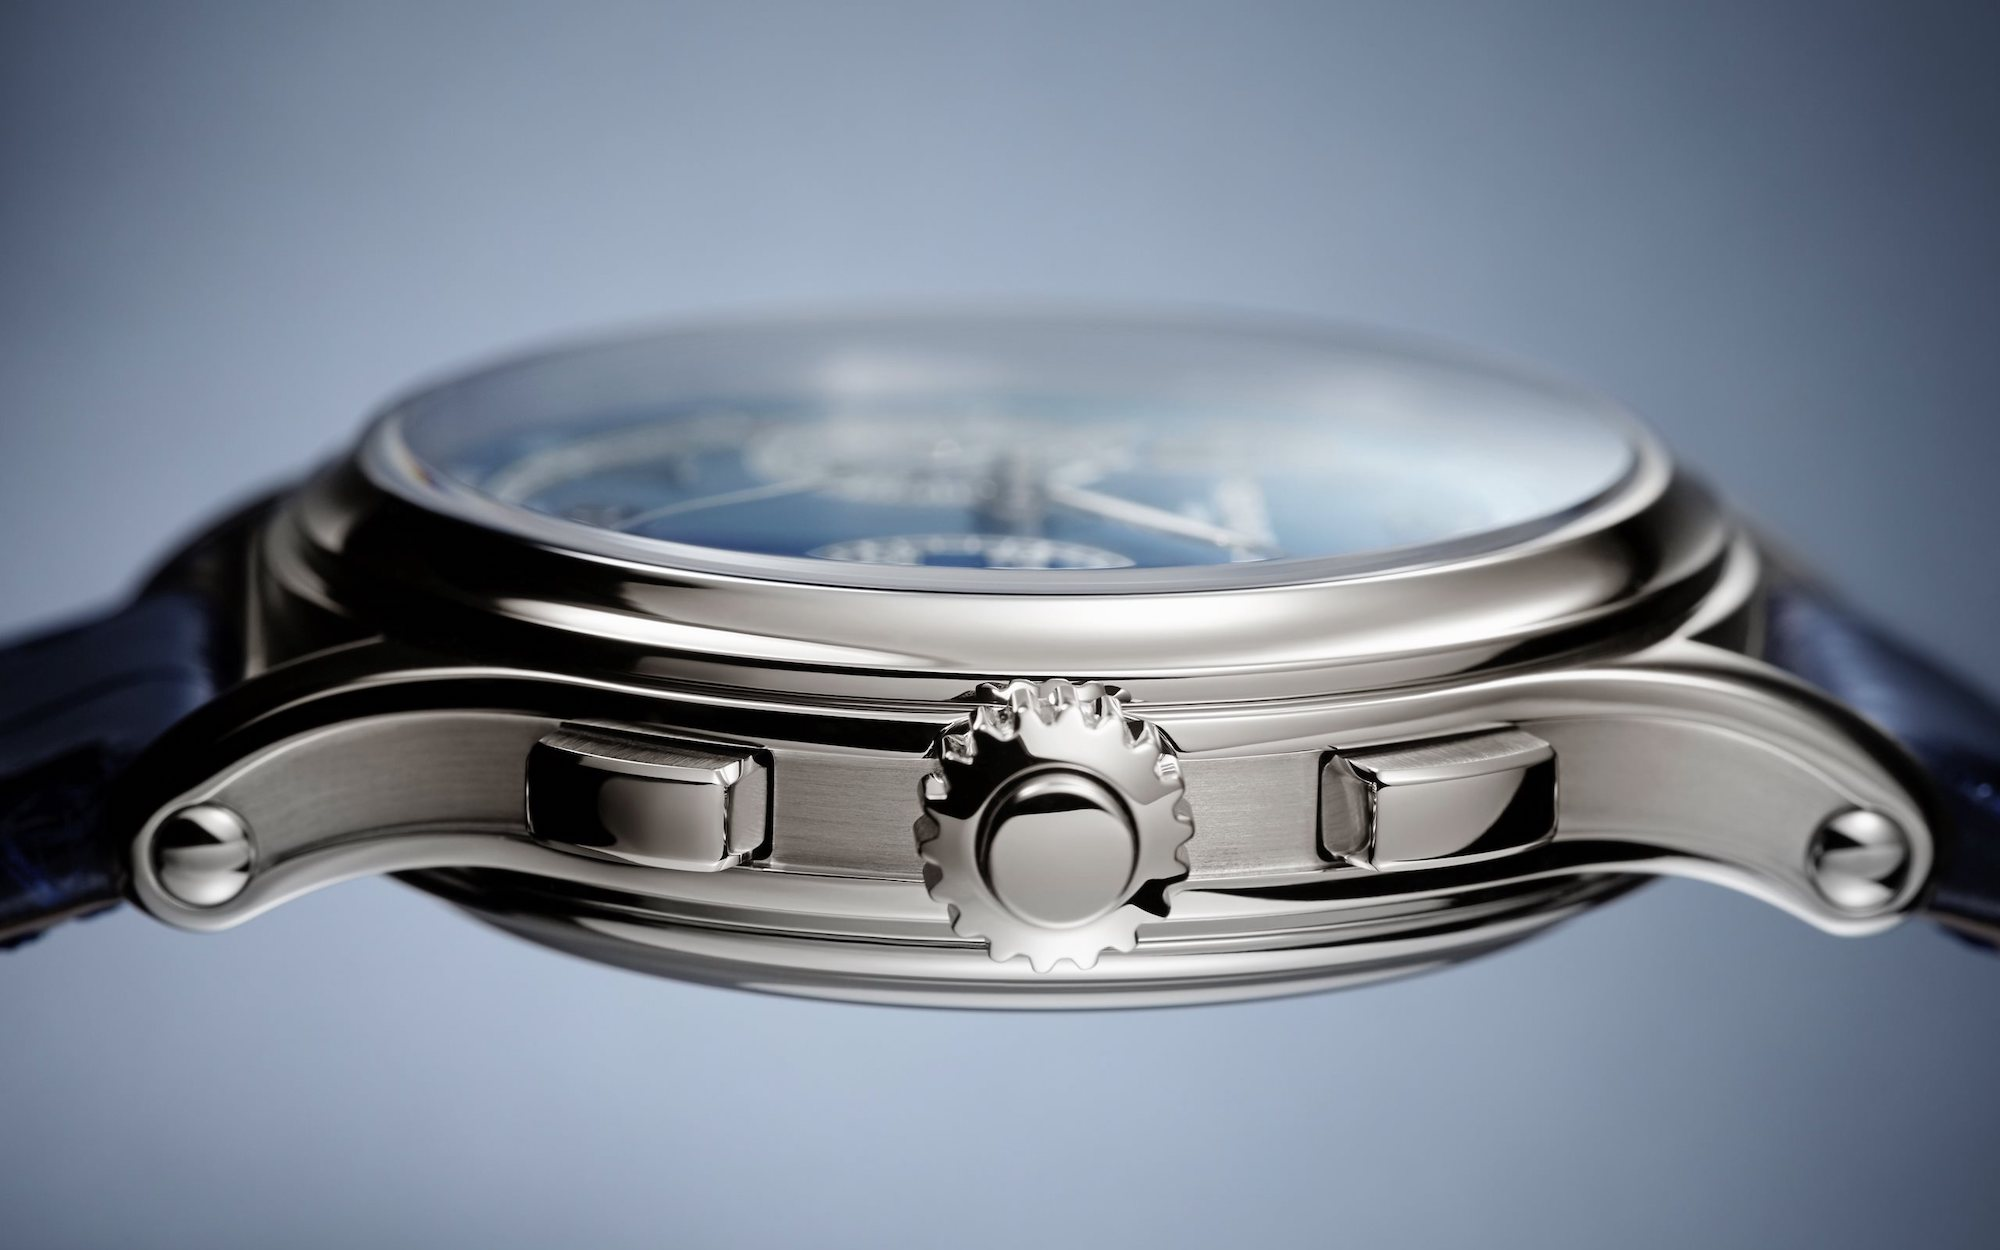 Patek Philippe 5370P Grand Complication detalle carrura